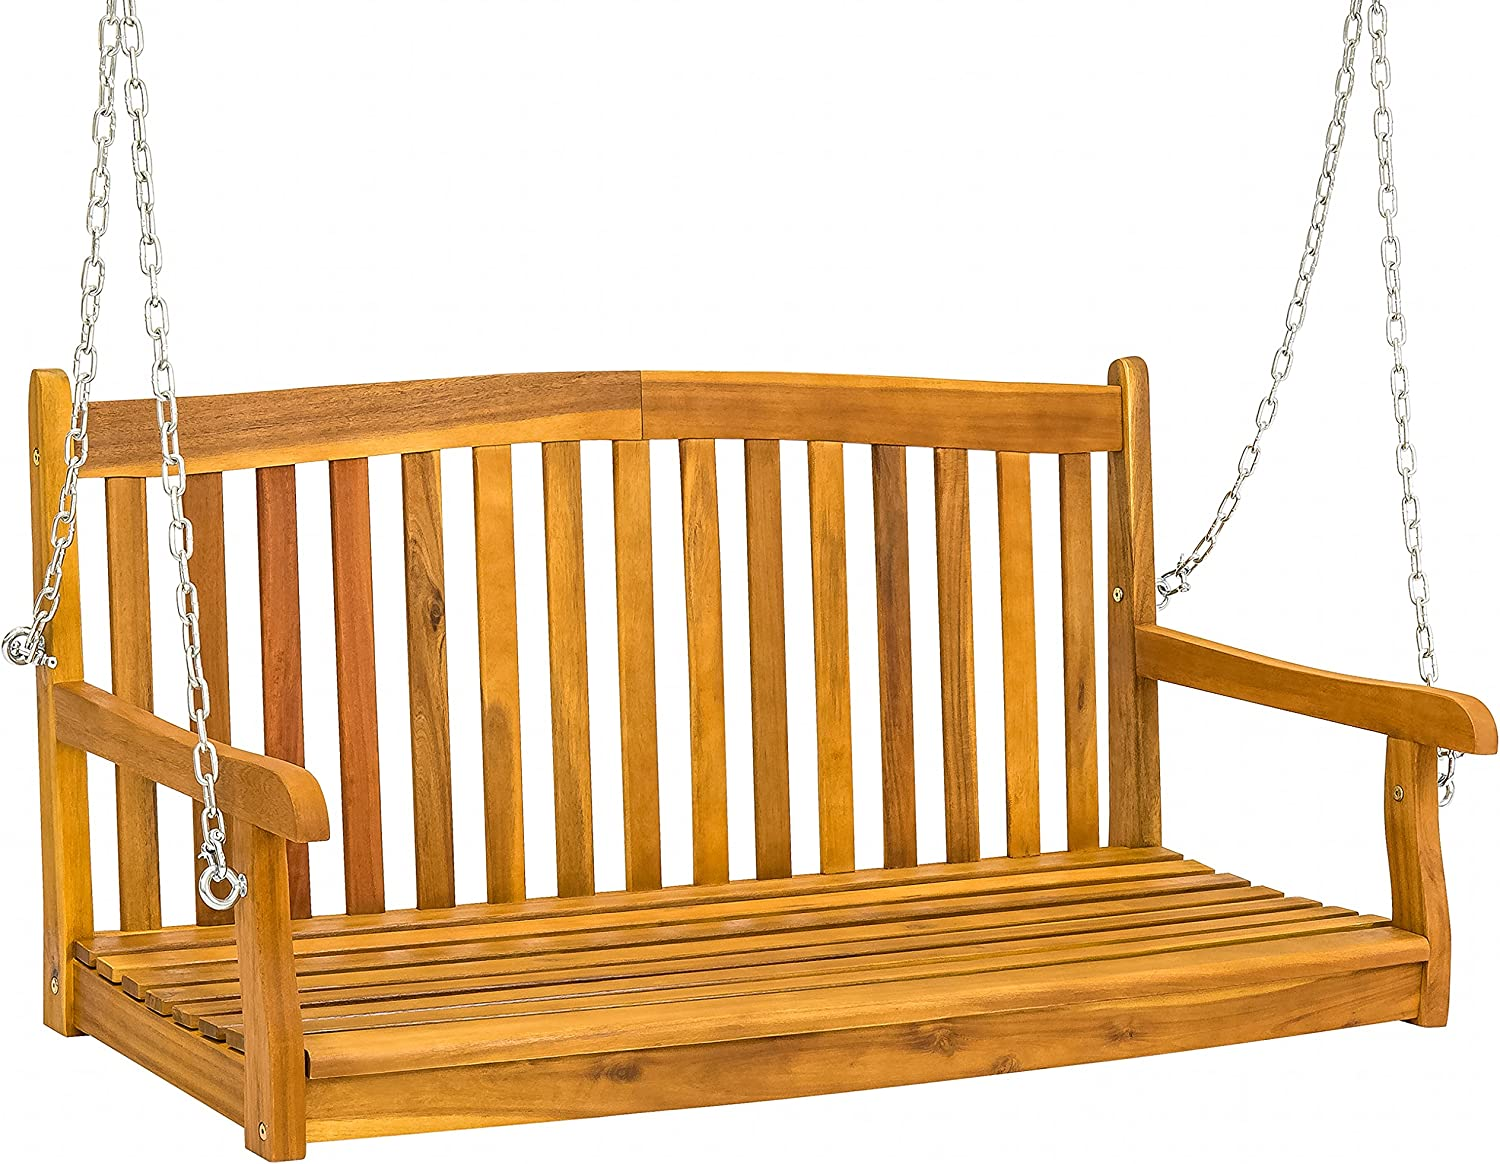 Best Choice Products 48in Wooden Curved Back Hanging Porch Swing Bench w Metal Chains for Patio, Deck, Garden – Brown